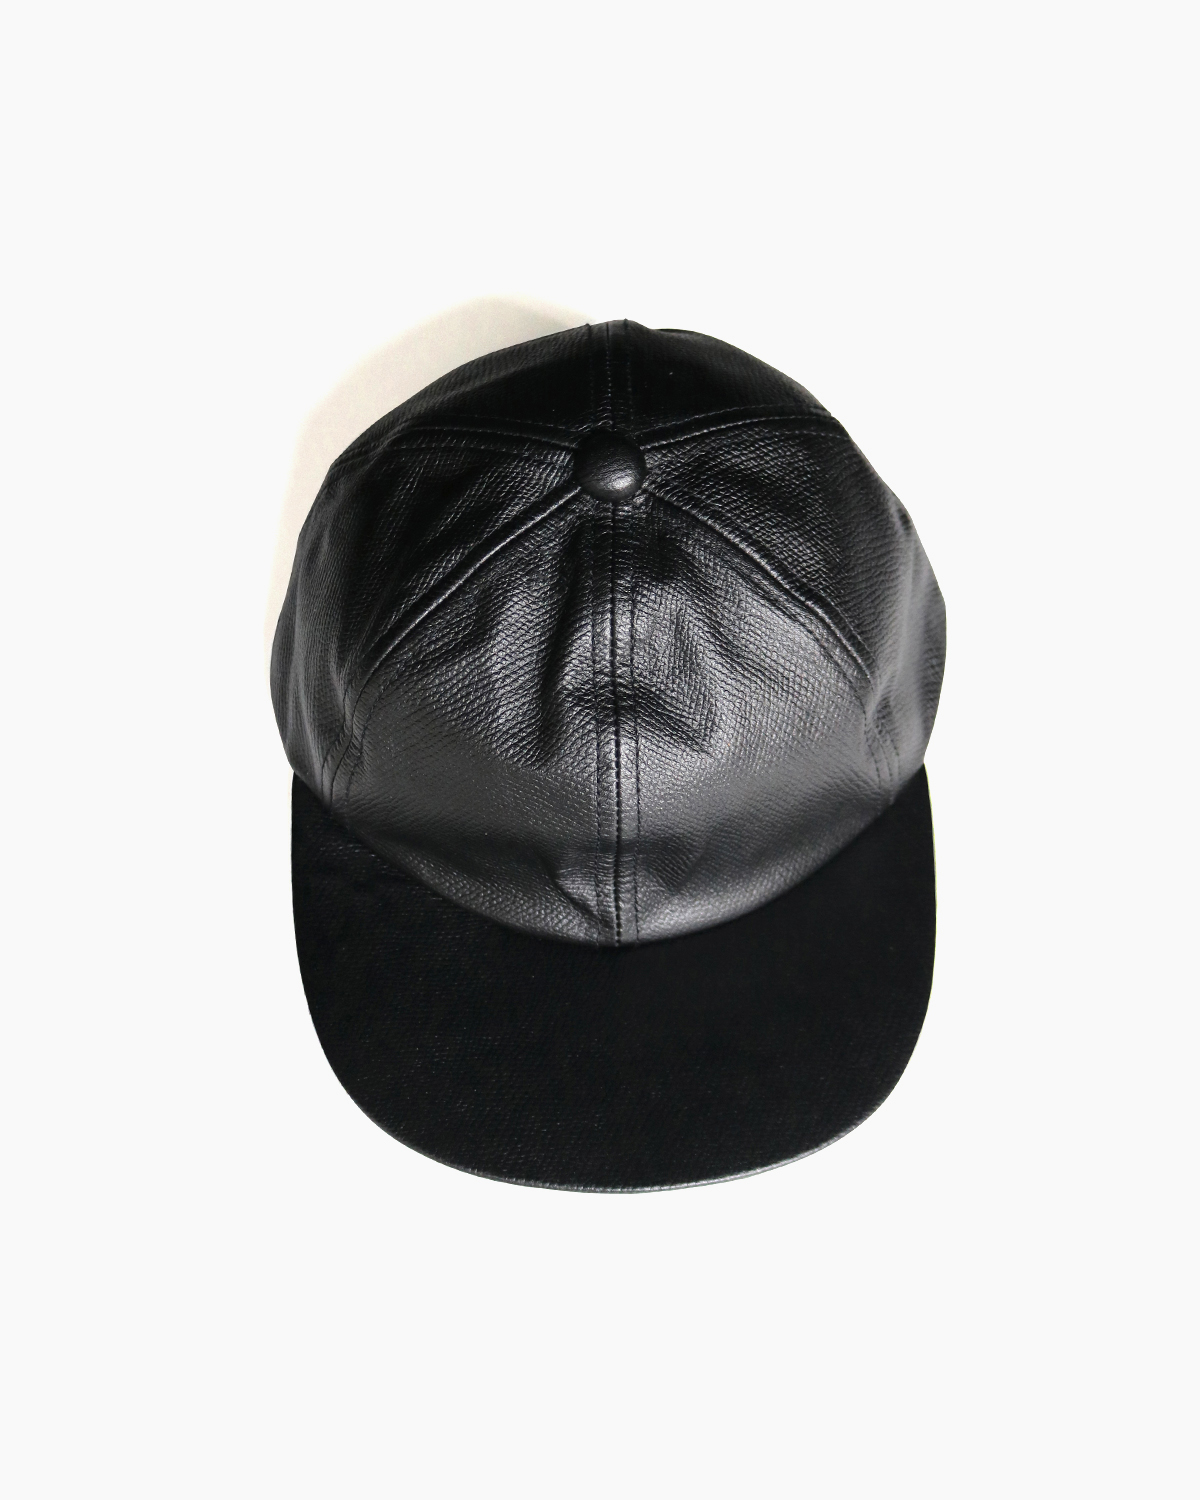 COW LEATHER CAP – Black|COMESANDGOES